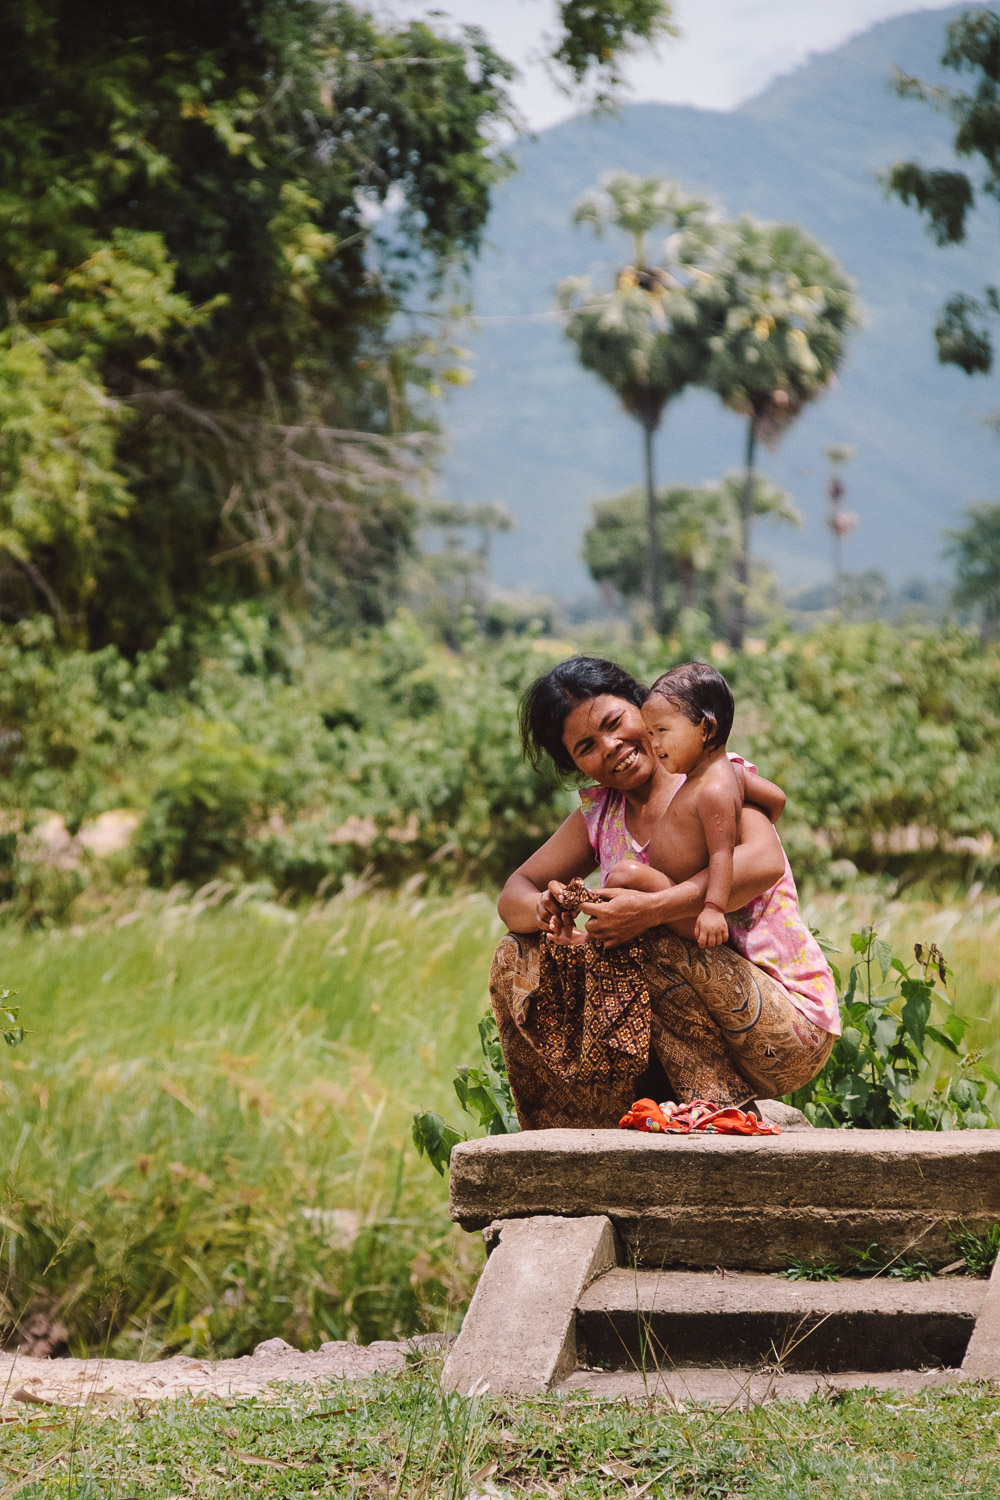 A grandmother smiles and holds her granddaughter after a bath in rural Cambodia. Photo by Daniel J. Powell